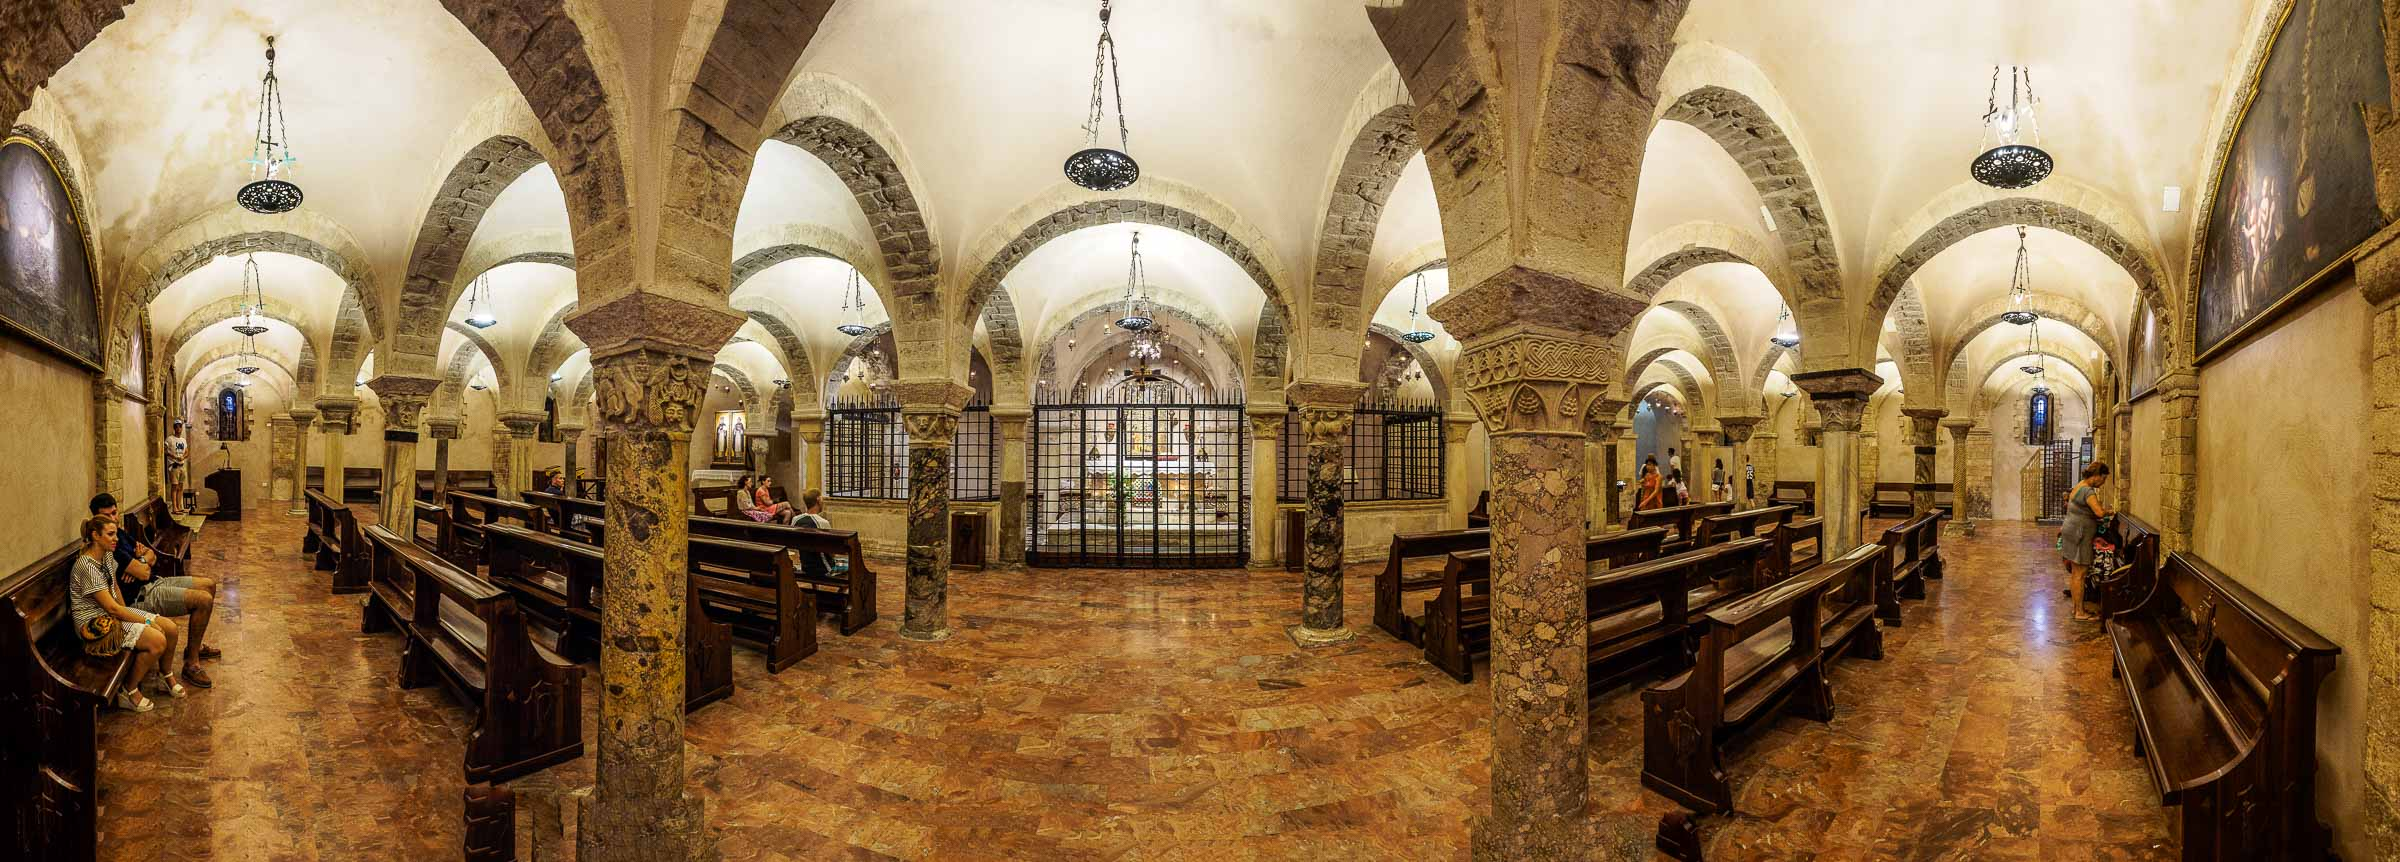 Bari Church Inside